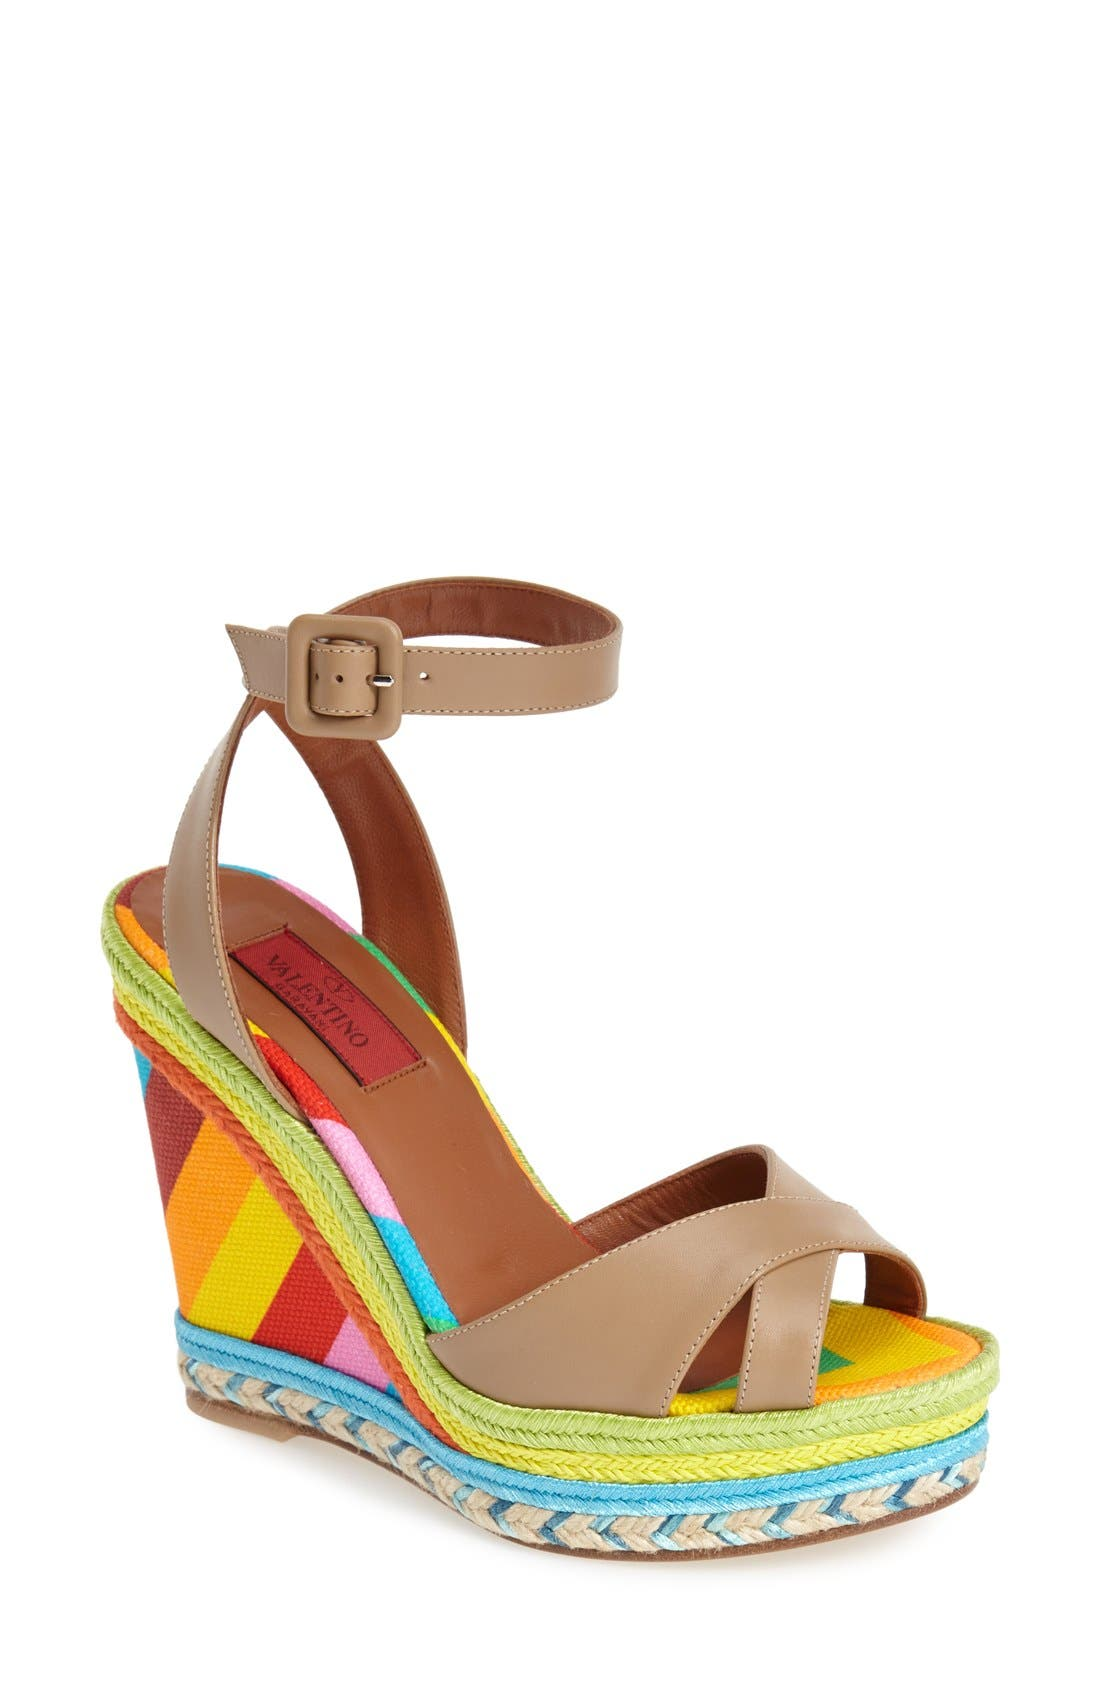 Alternate Image 1 Selected - VALENTINO GARAVANI Espadrille Wedge Sandal (Women)